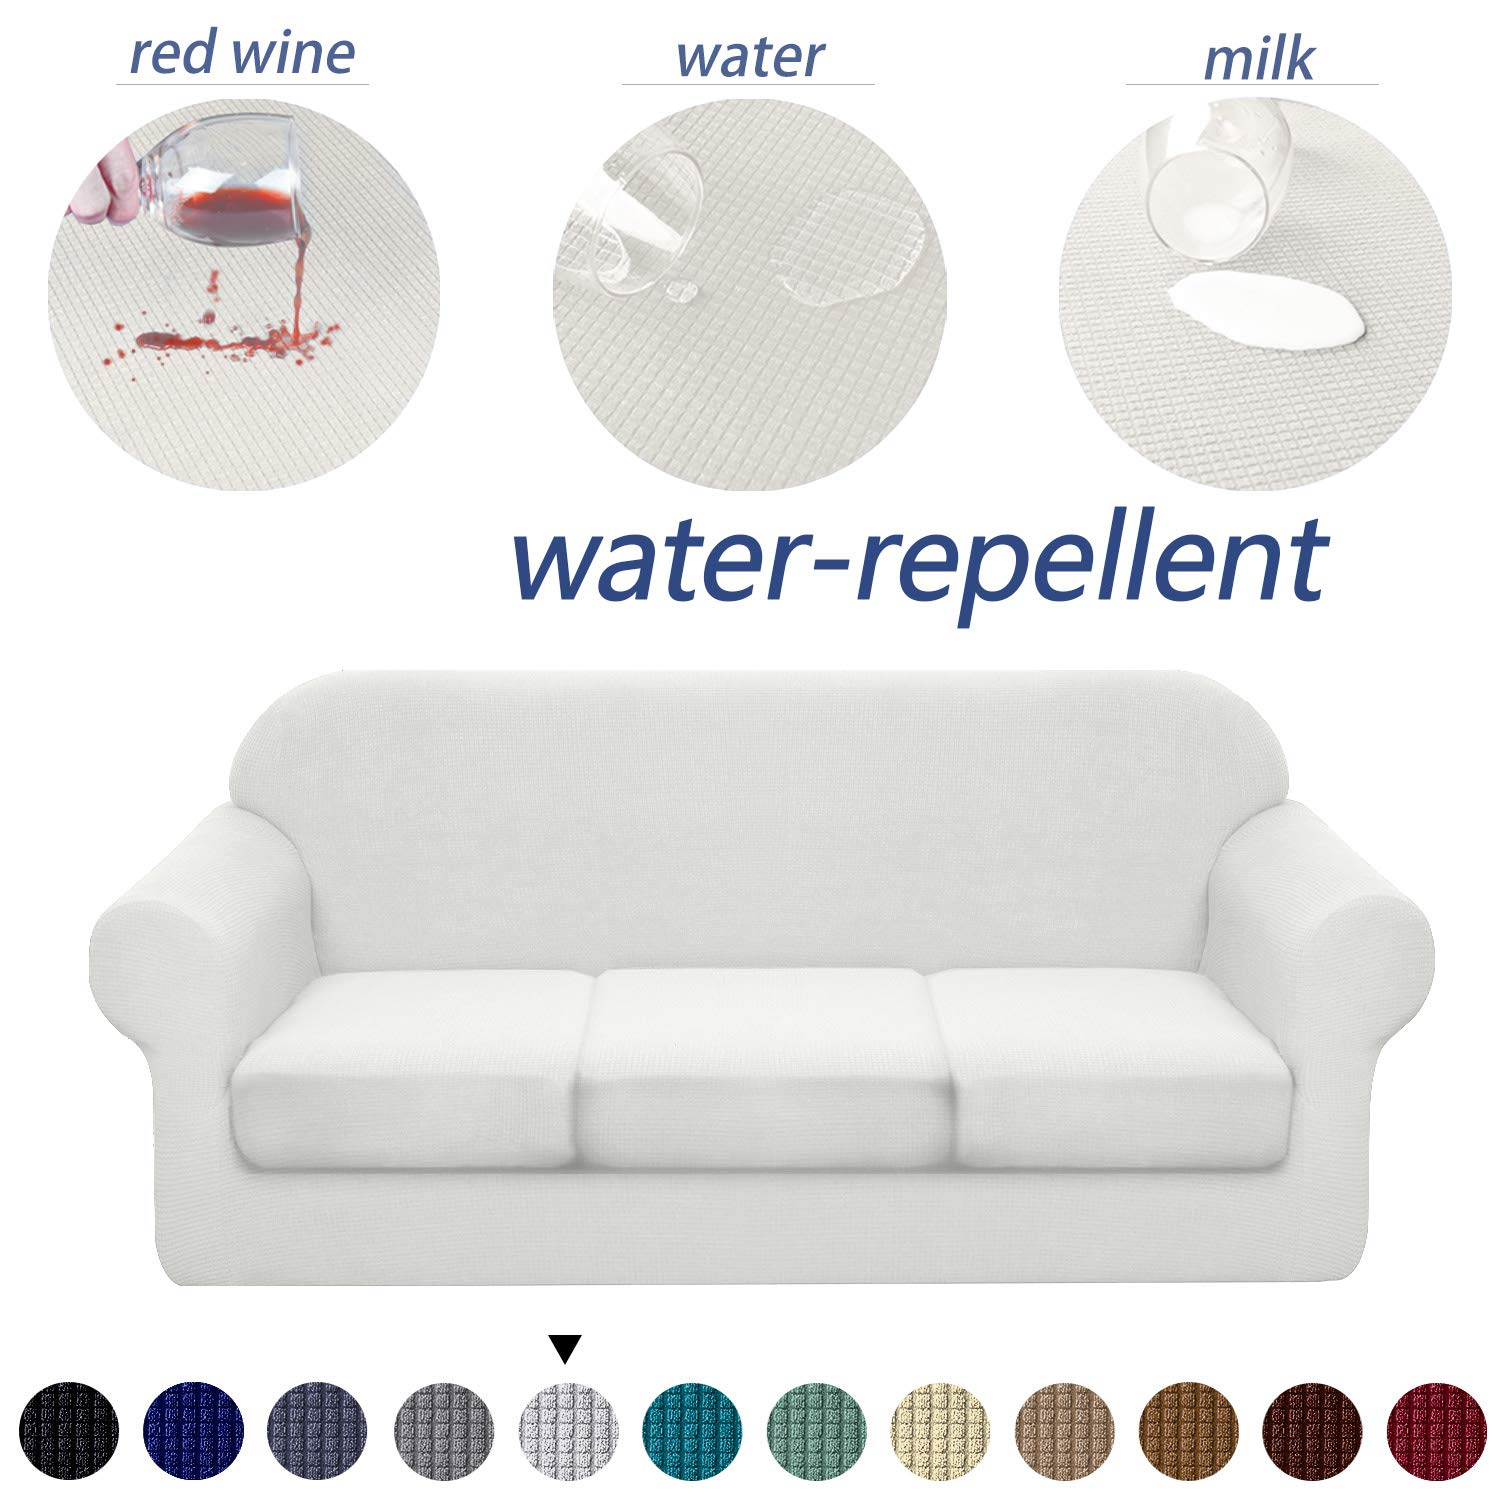 Granbest 4 Piece Premium Water-Repellent Sofa Slipcover for 3 Cushion Couch High Stretch Sofa Cover for 3 seat Sofa Super Soft Fabric Couch Cover for Dogs Pets Furniture Cover (Large, Creamy White)